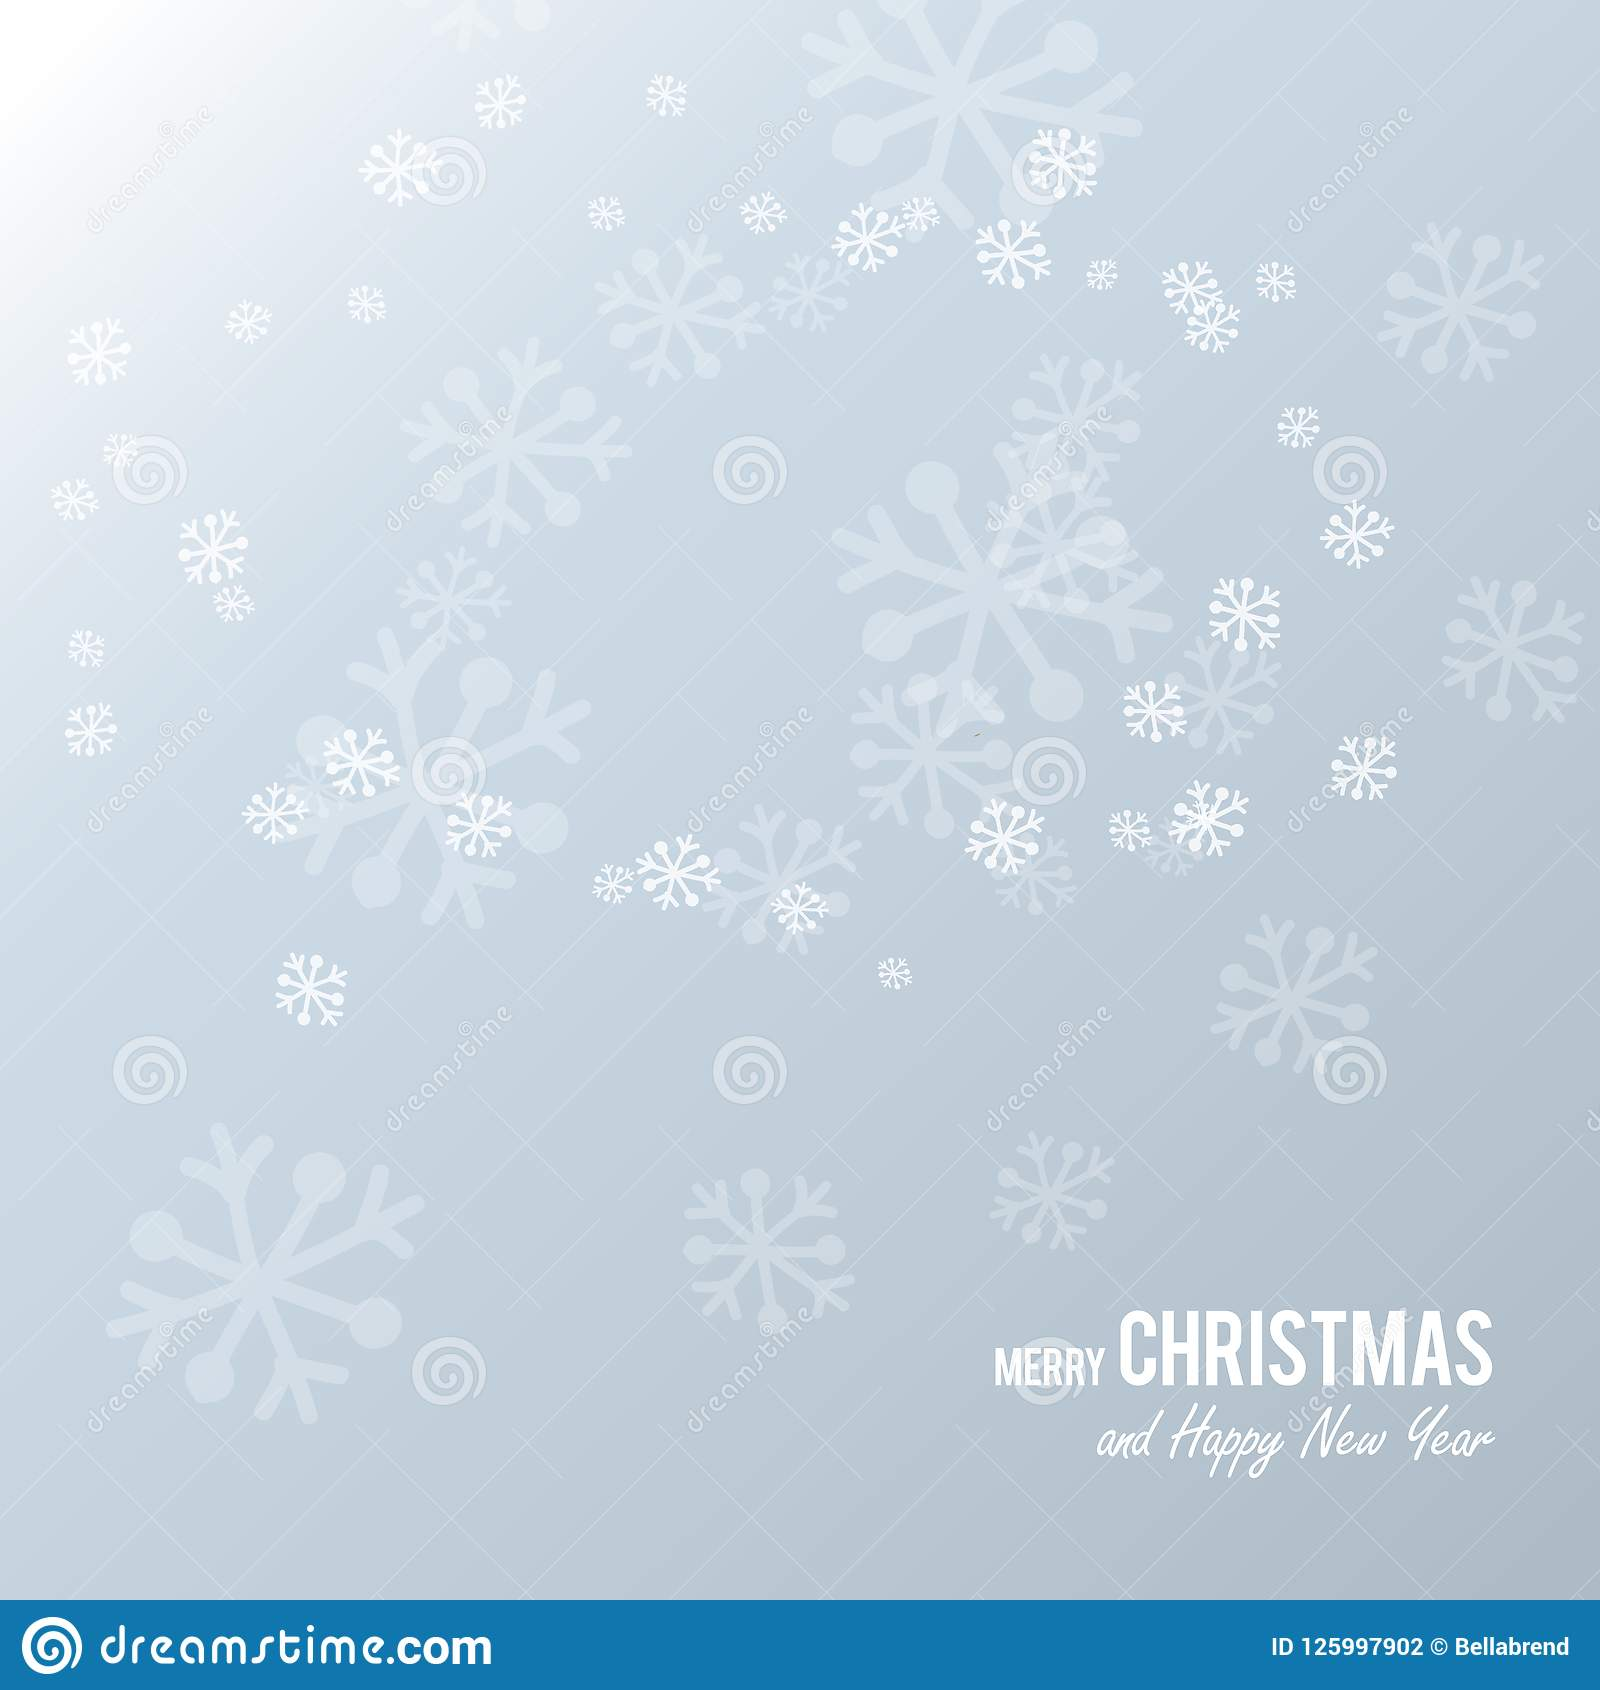 Christmas Postcard with white paper snowflakes on a light blue background.